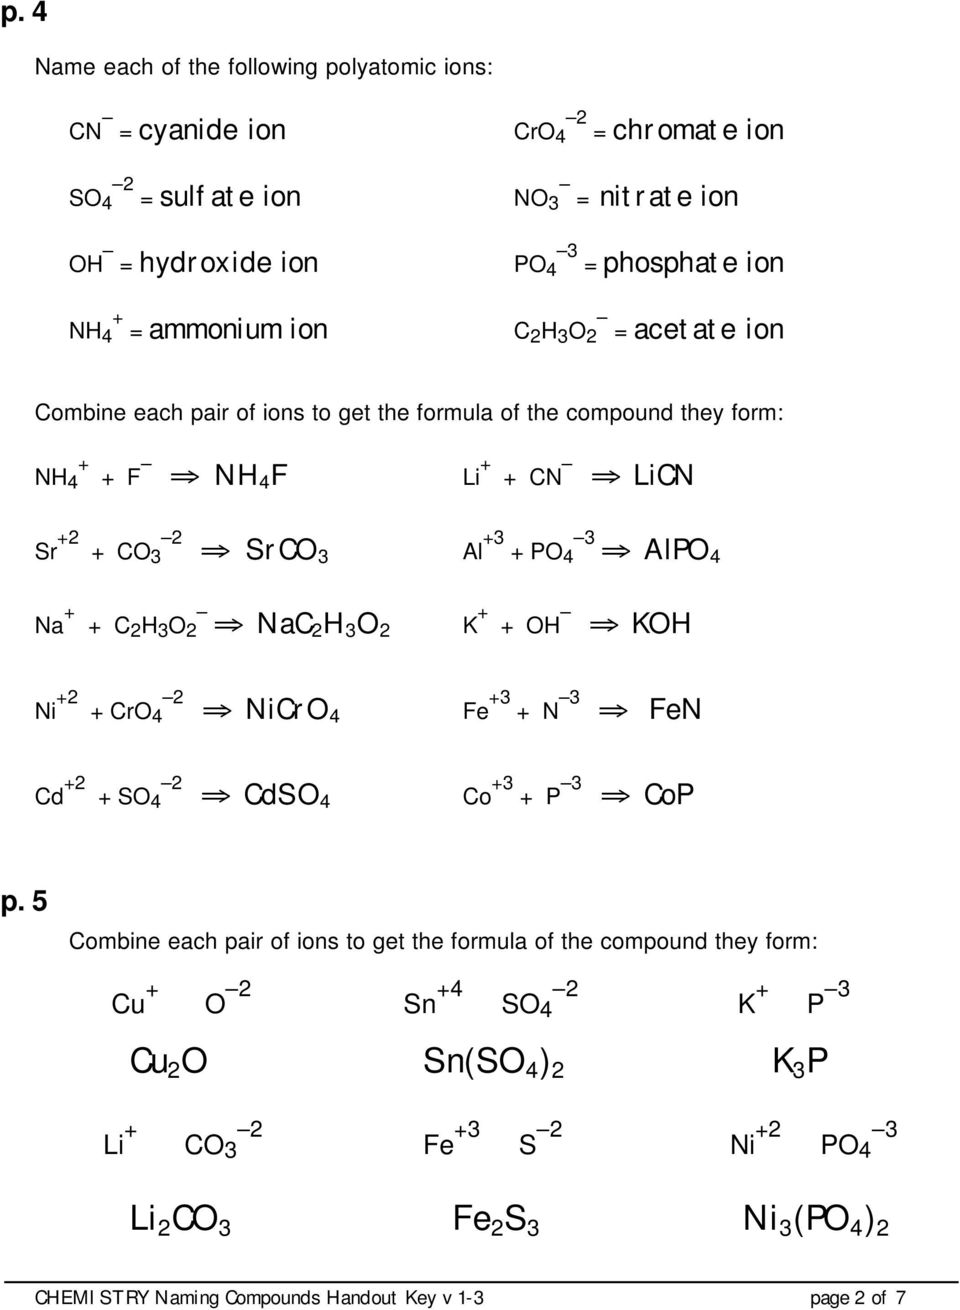 Naming Compounds Handout Key Pdf